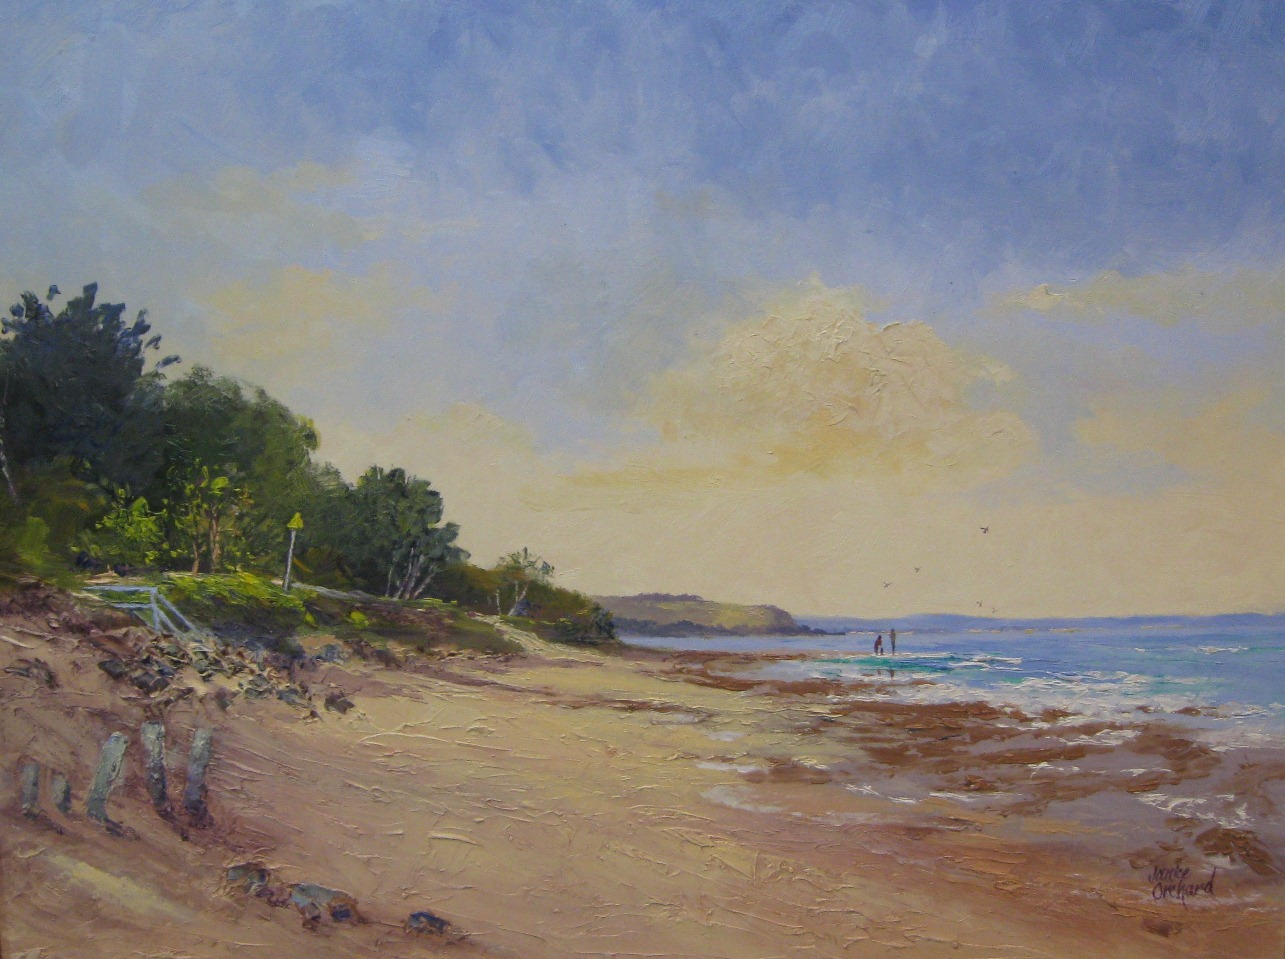 Kiosk Beach, Inverloch SOLD